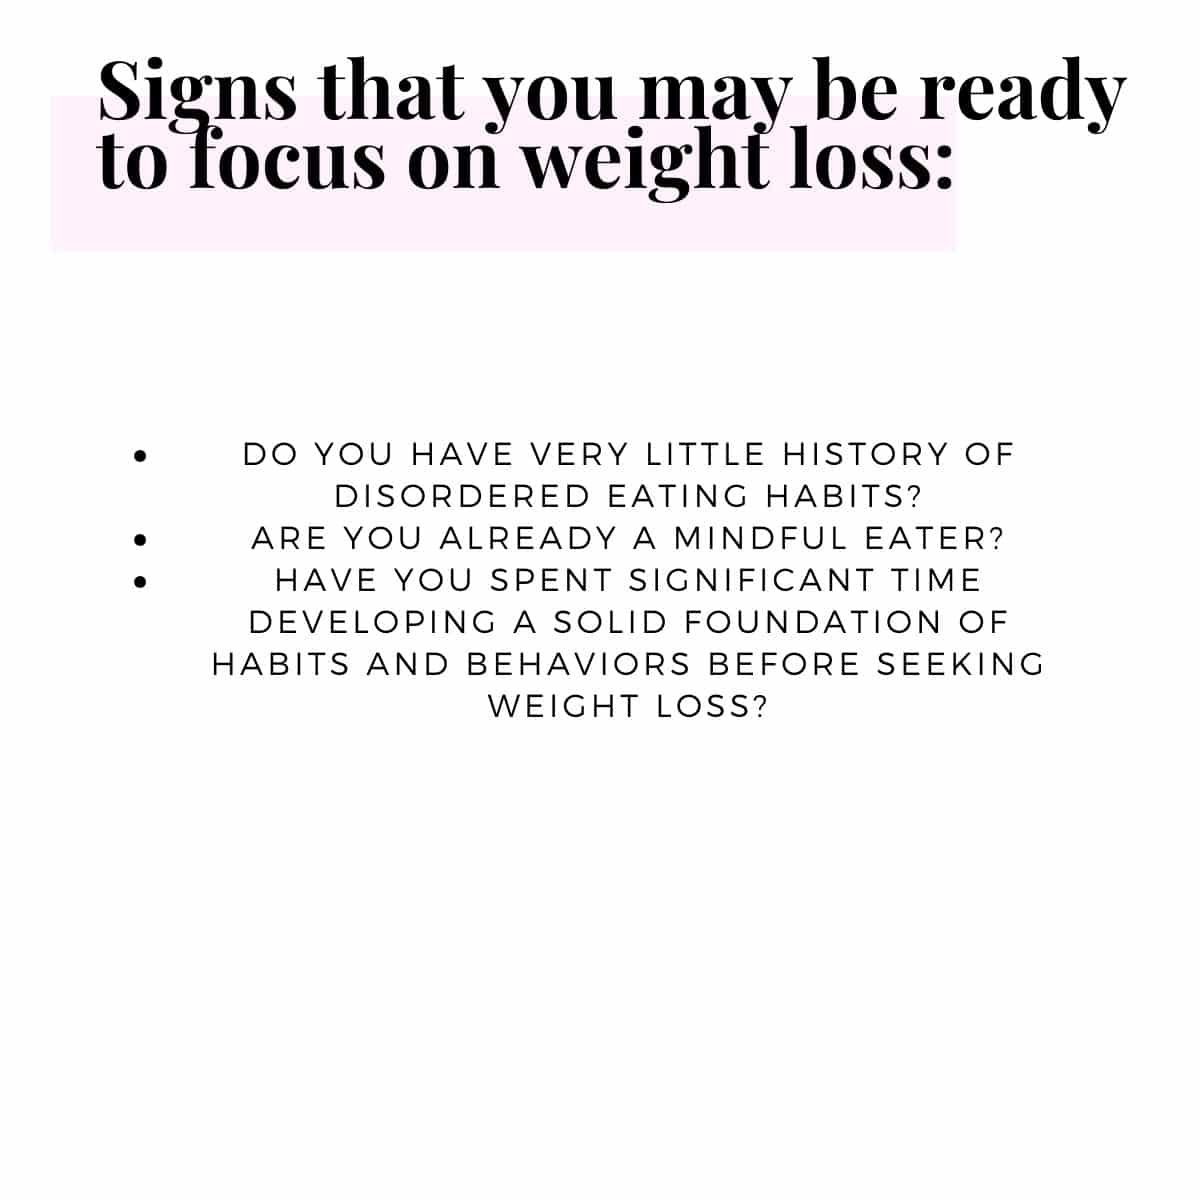 Signs that you may be ready to focus on weight loss